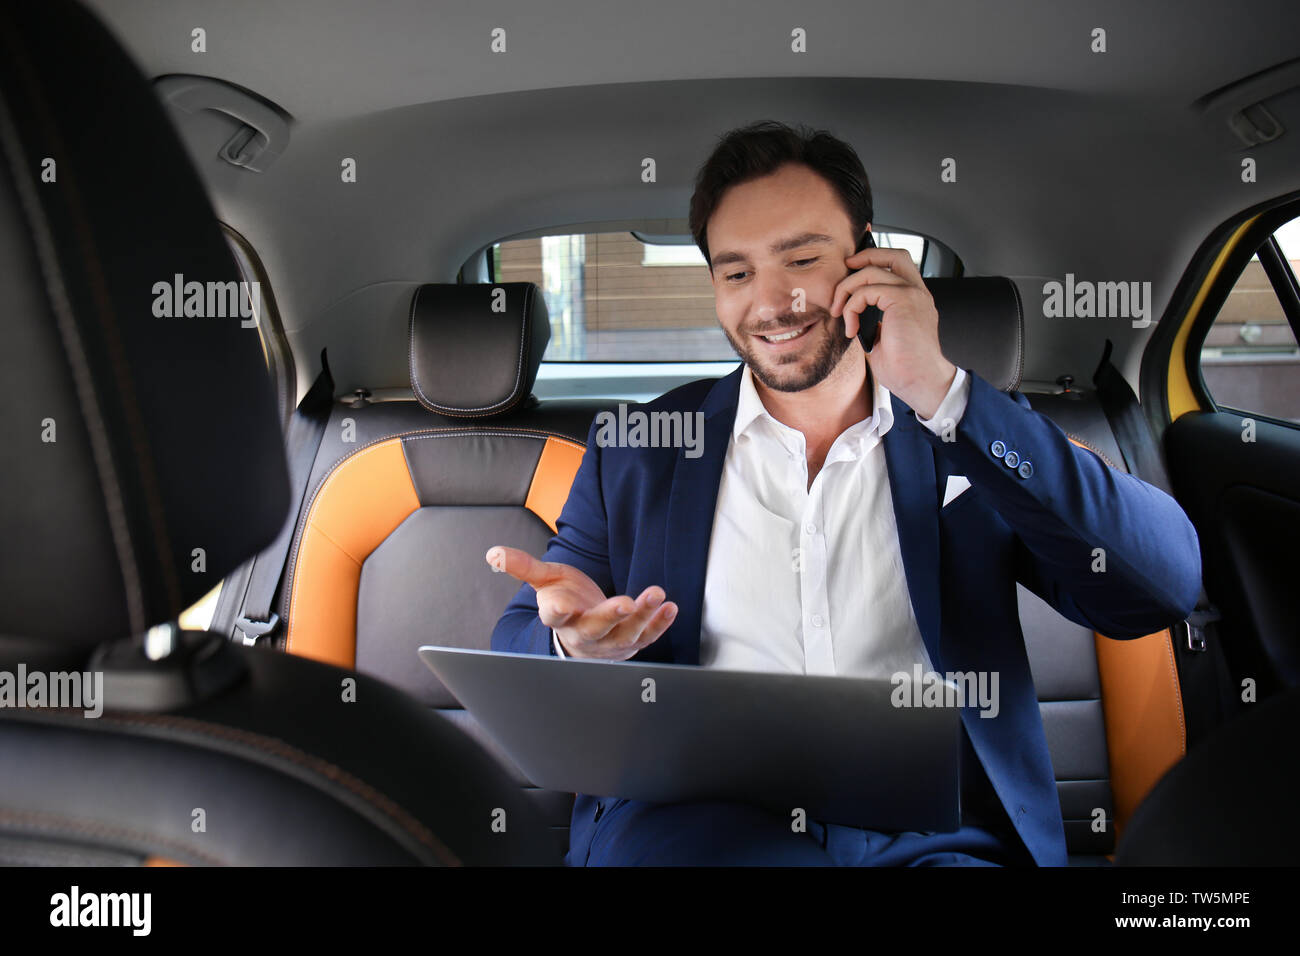 Handsome man with laptop talking on phone while sitting in taxi car - Stock Image